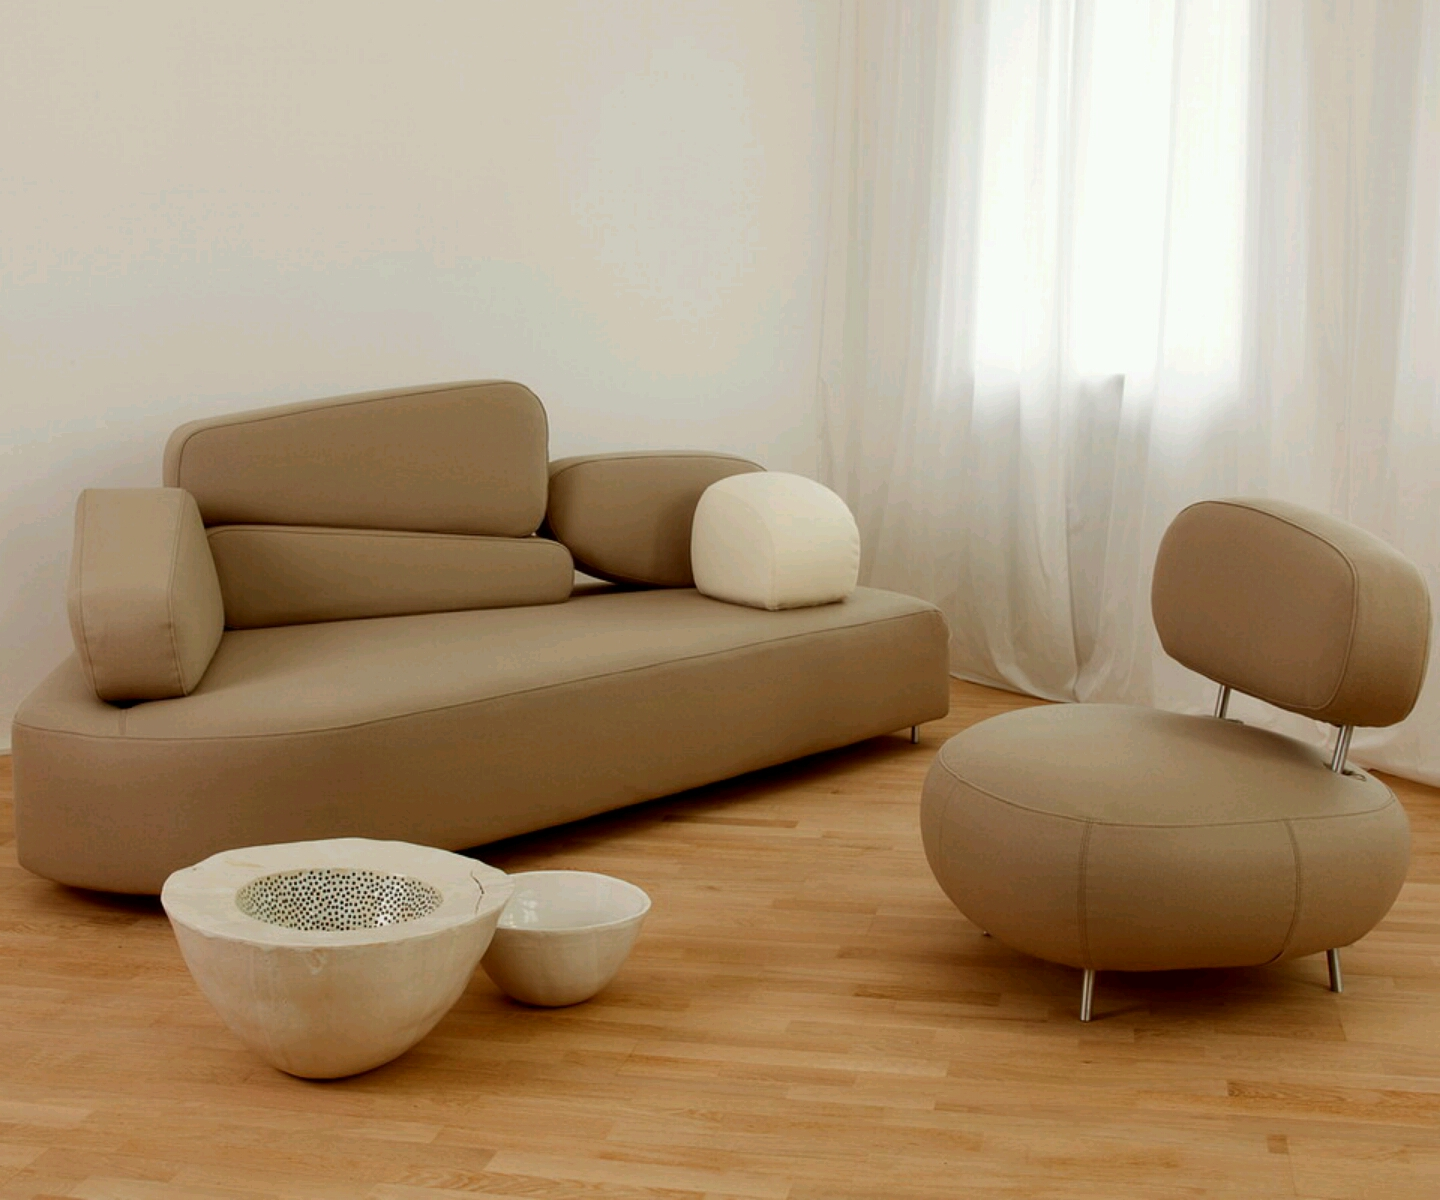 Brilliant Furniture Modern Sofas Designs 1440 x 1200 · 856 kB · jpeg